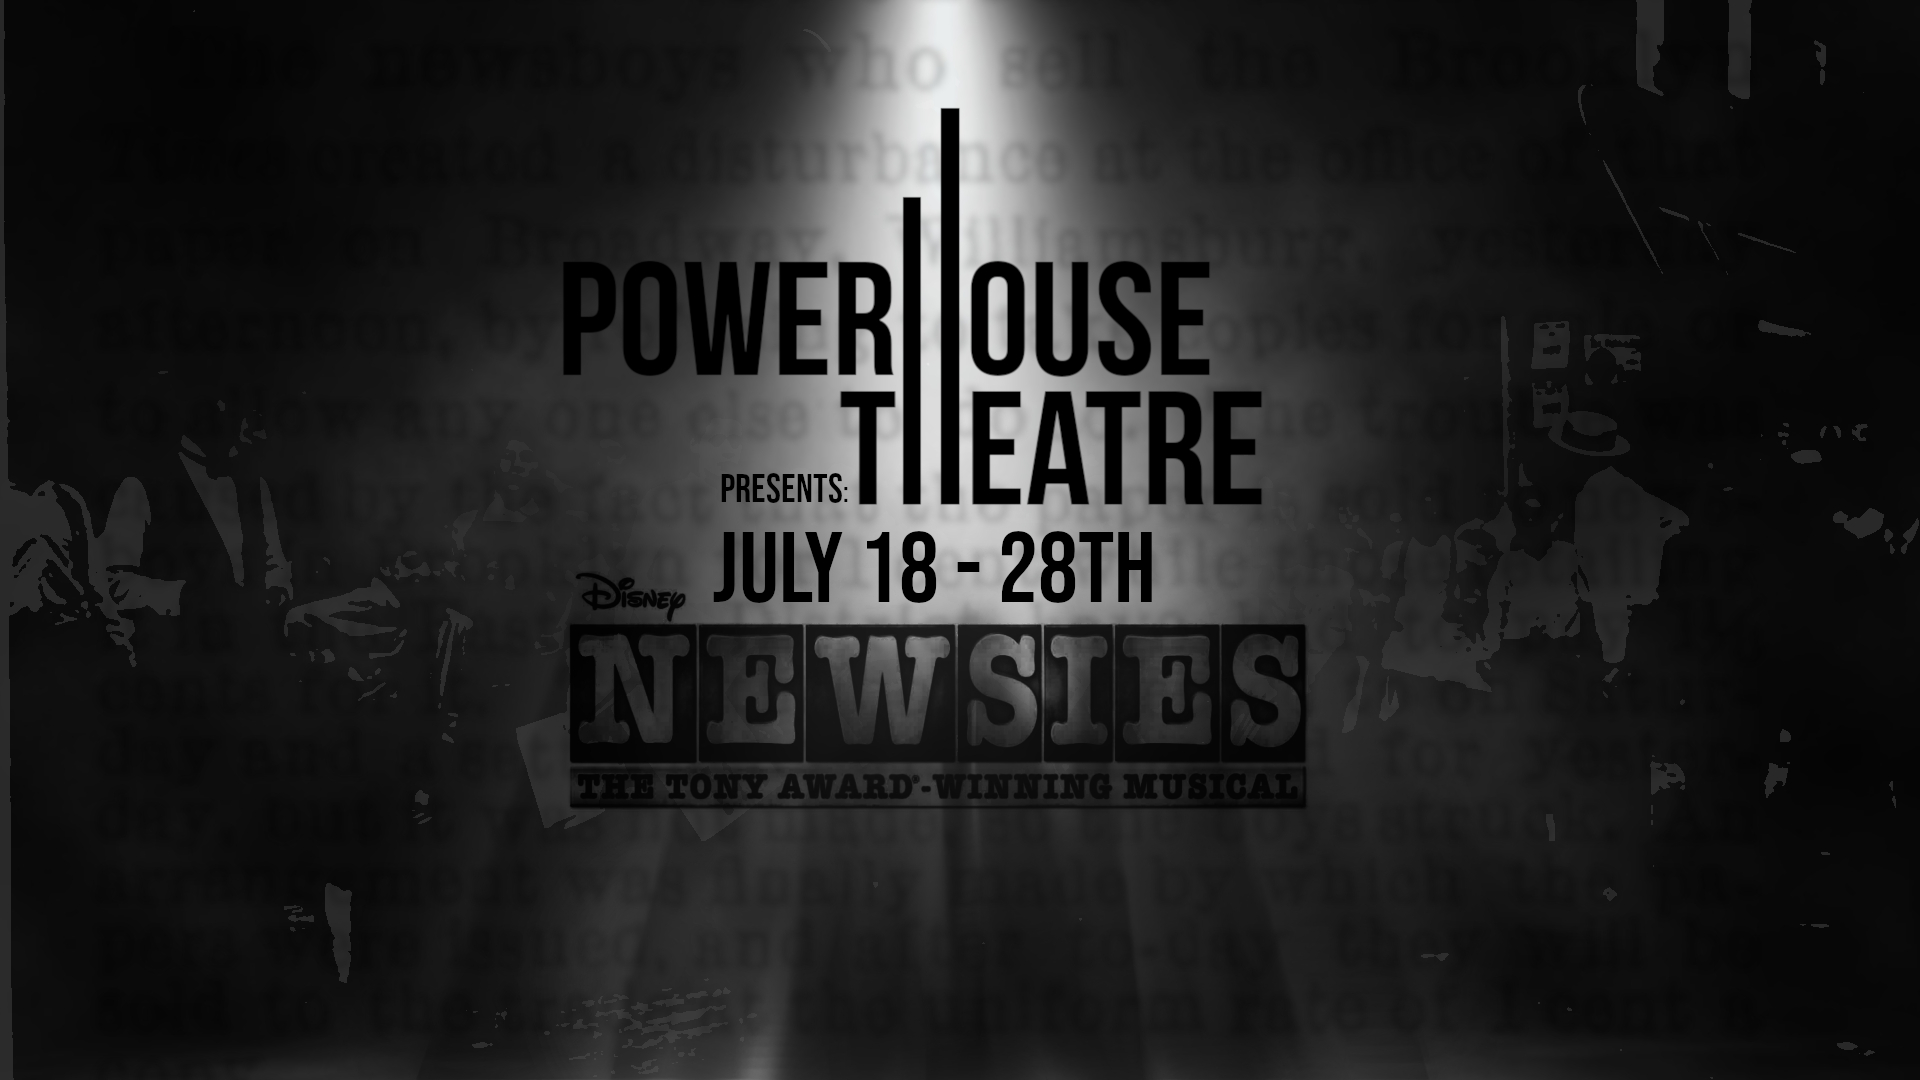 newsies announcement post.jpg